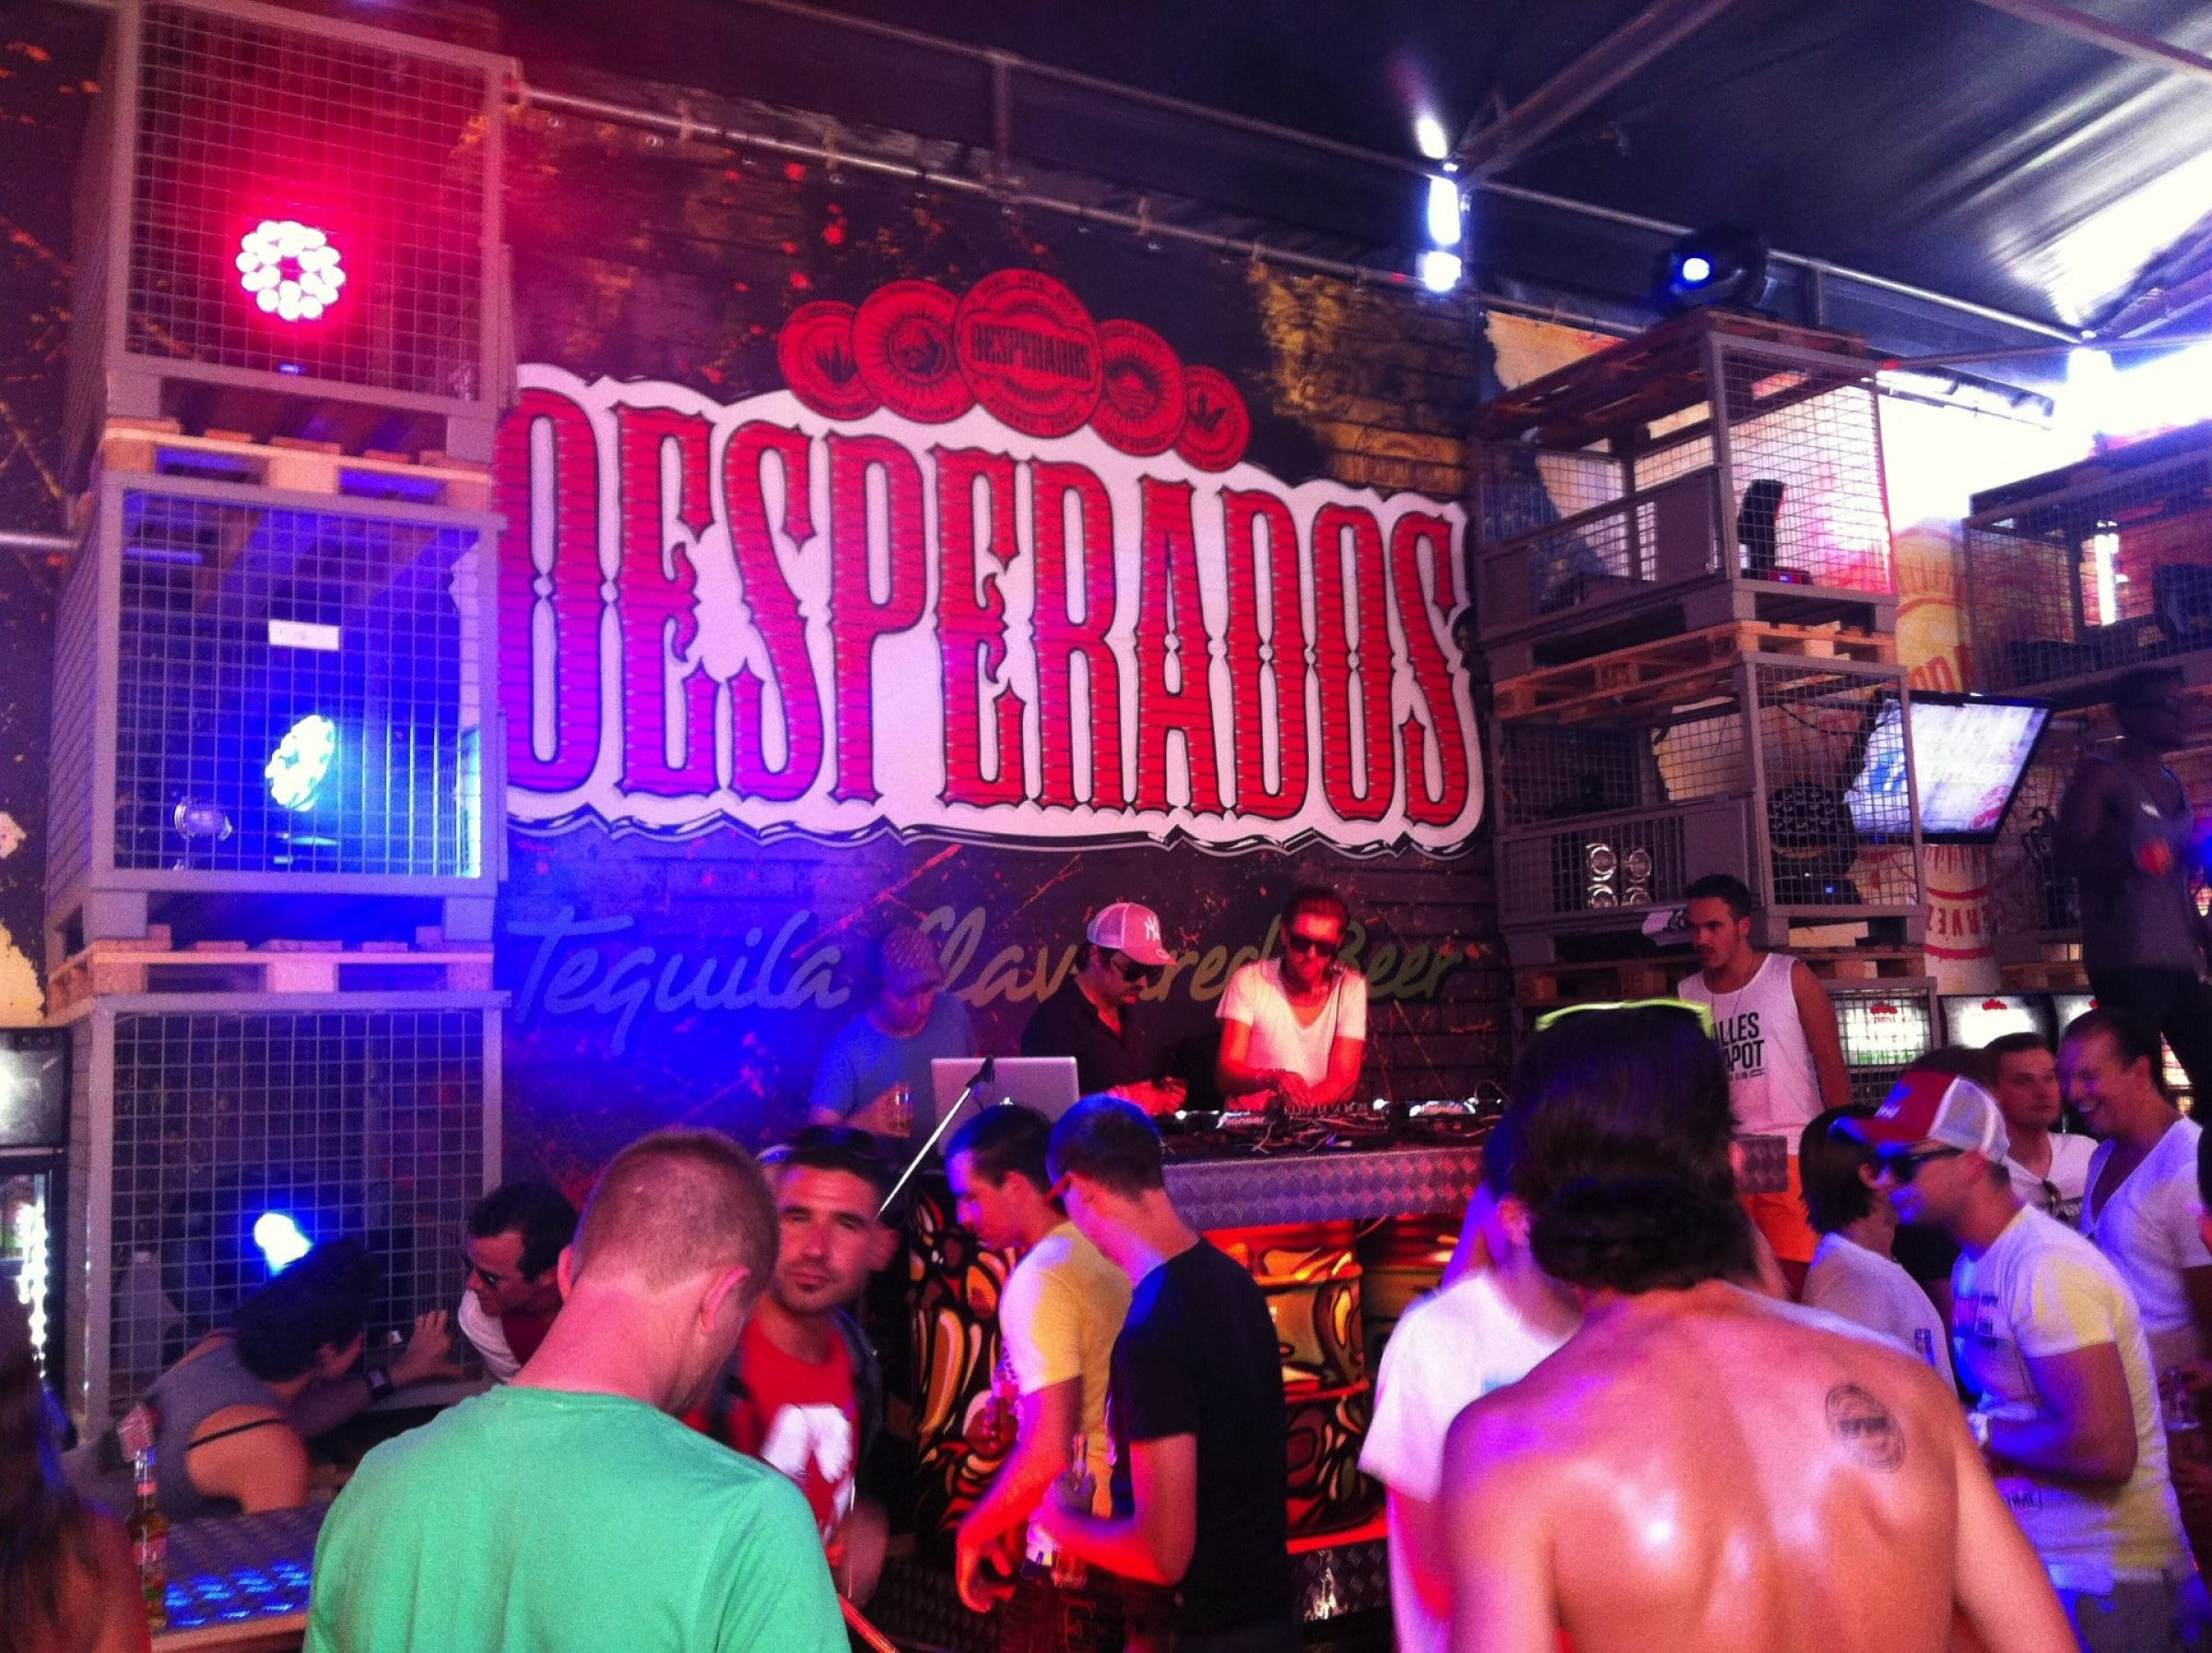 Fast Forward Evenementenbureau Gent Festivalstand Desperados Factory Extrema Outdoor P18Q50Pc851Cj4Ejkfi71Euq1H215